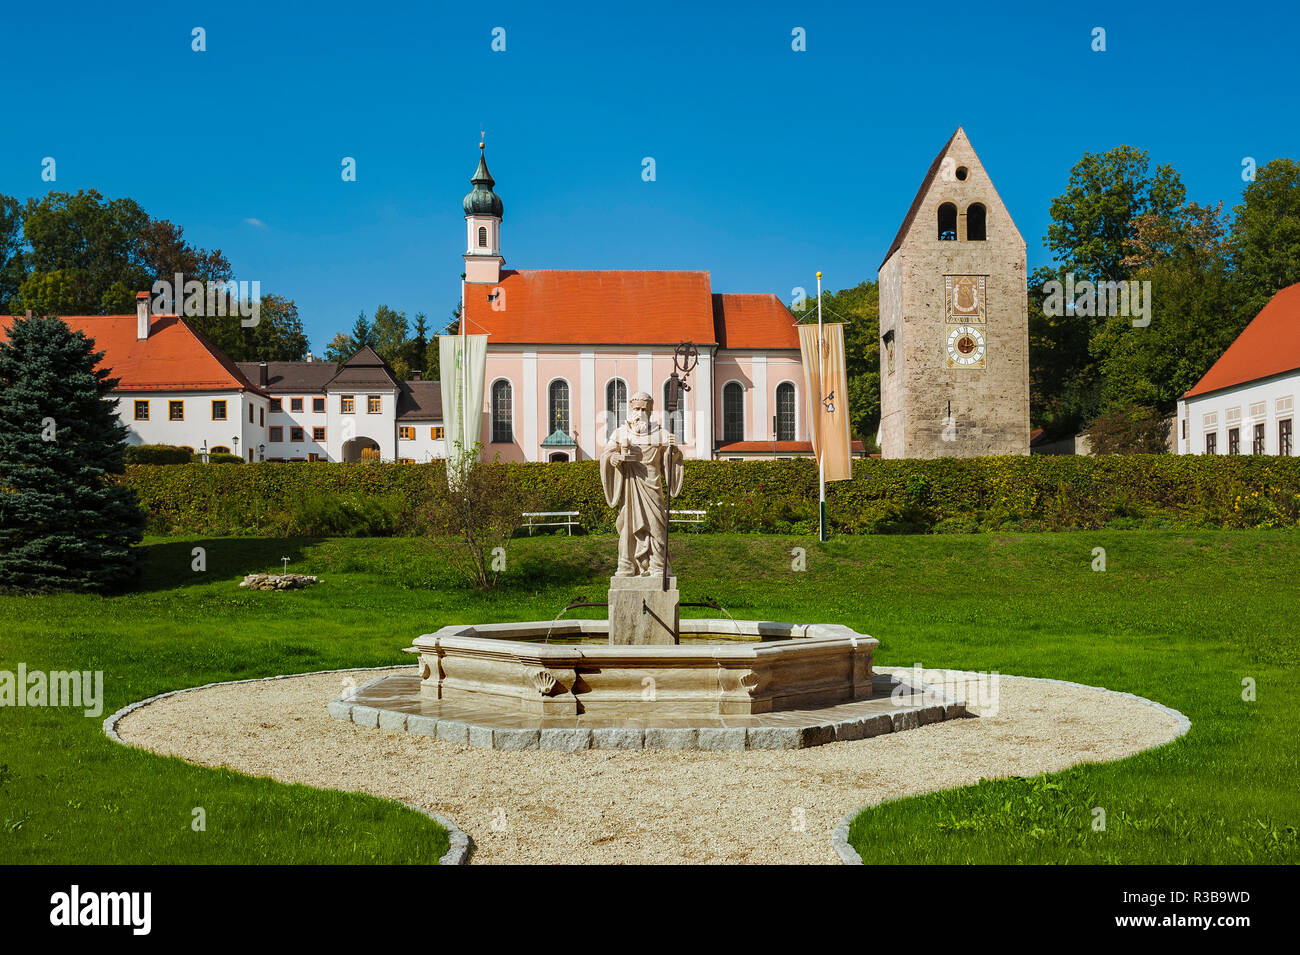 Monastery church with Roman tower and fountain with fountain figure of abbot Walto or Balto, Wessobrunn Monastery, Upper Bavaria - Stock Image